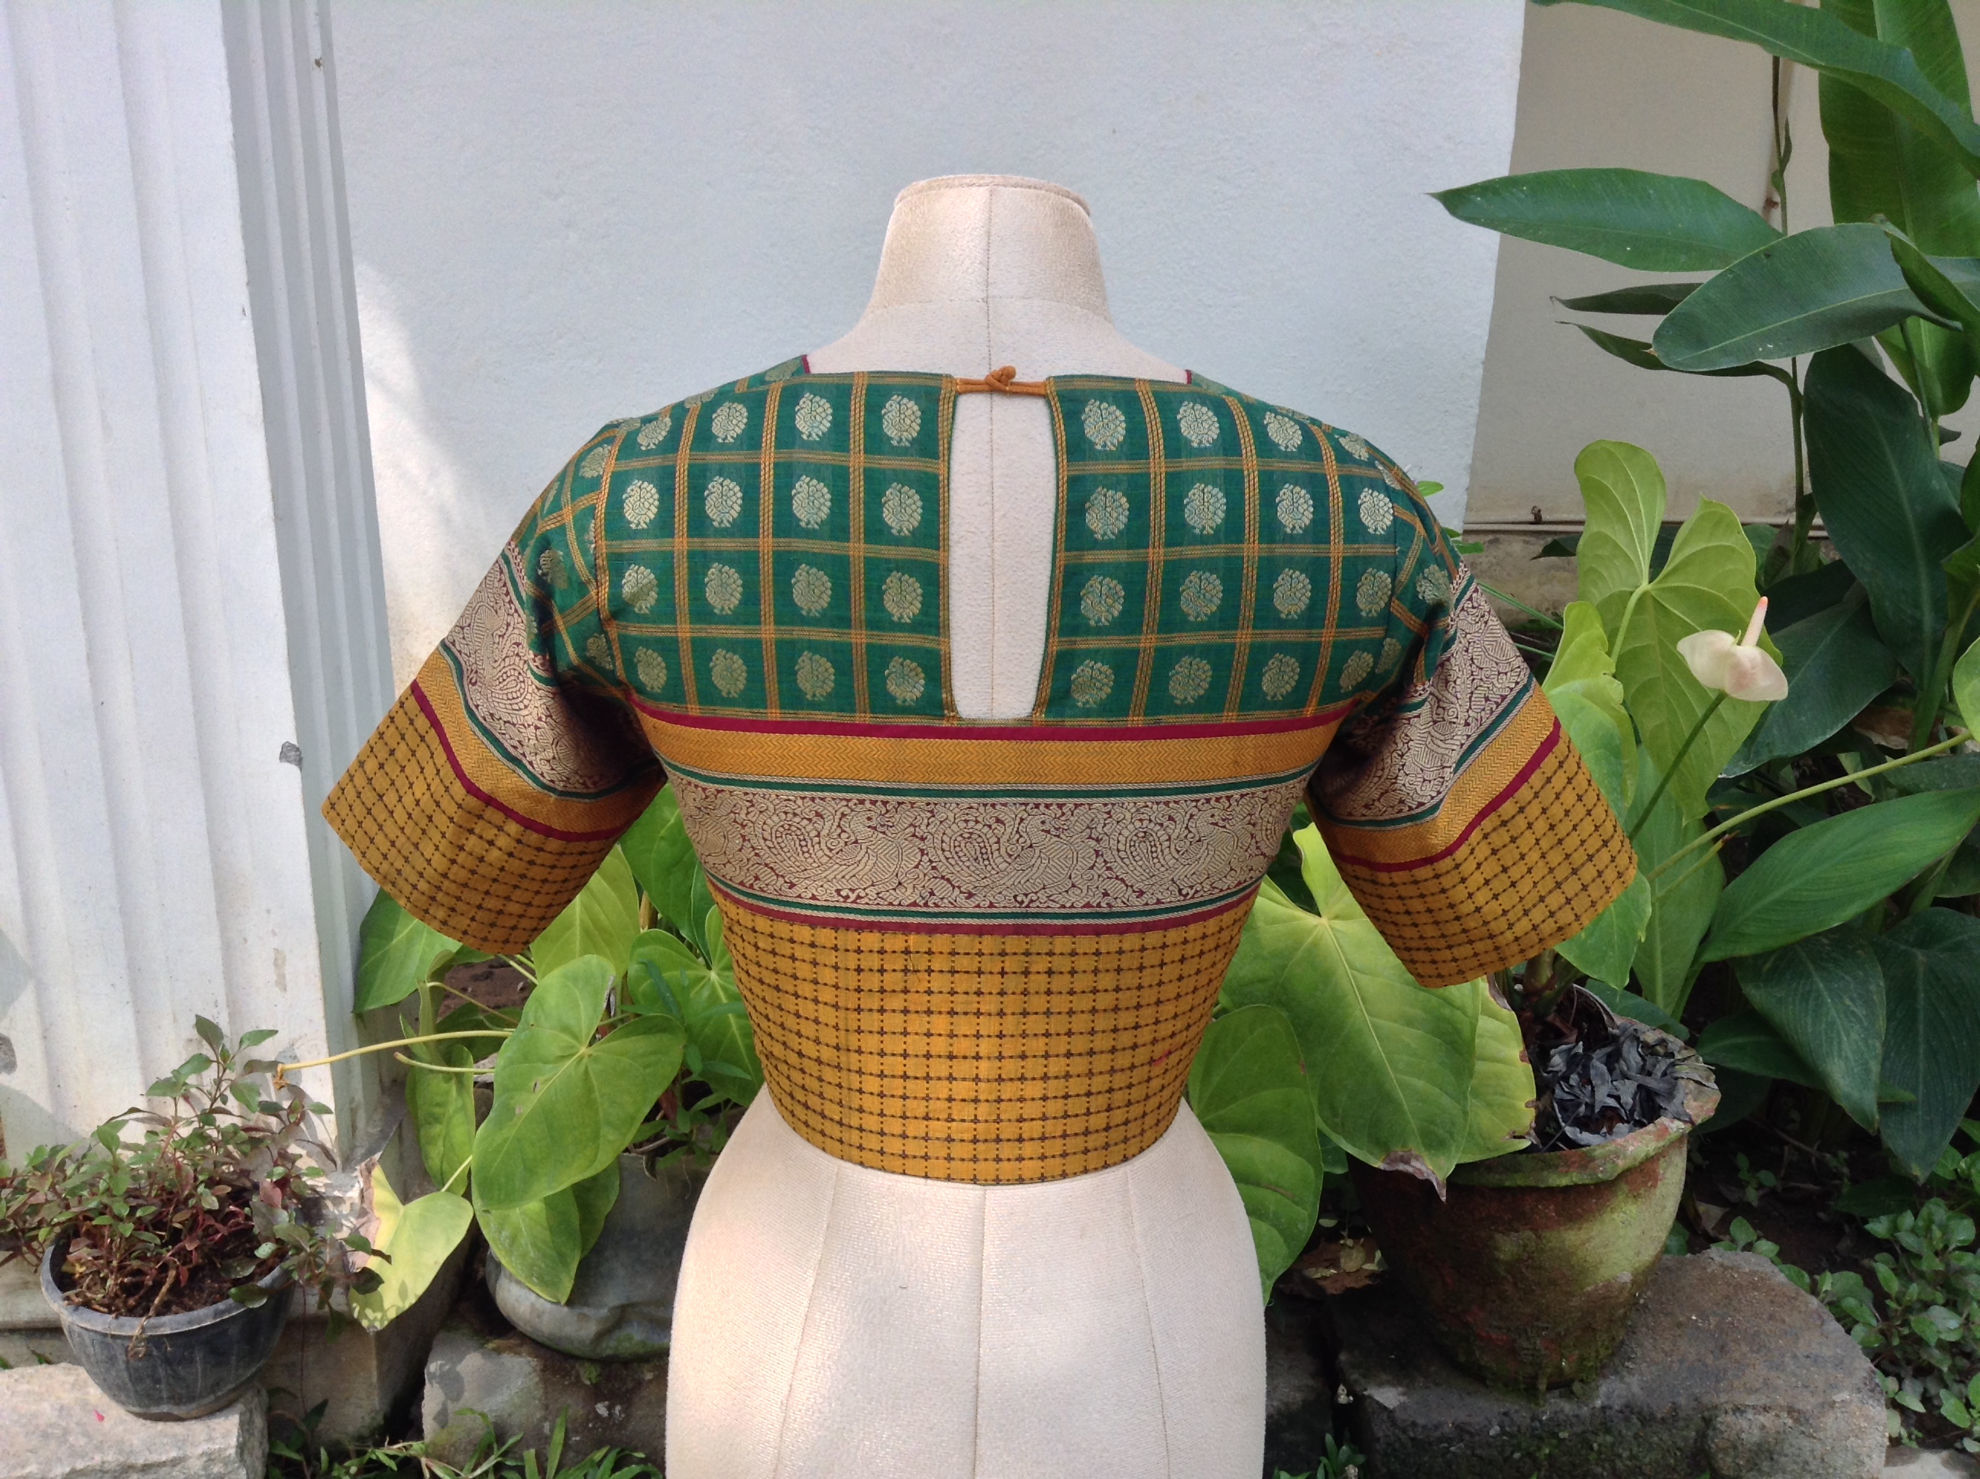 TRADITIONS IN GREEN